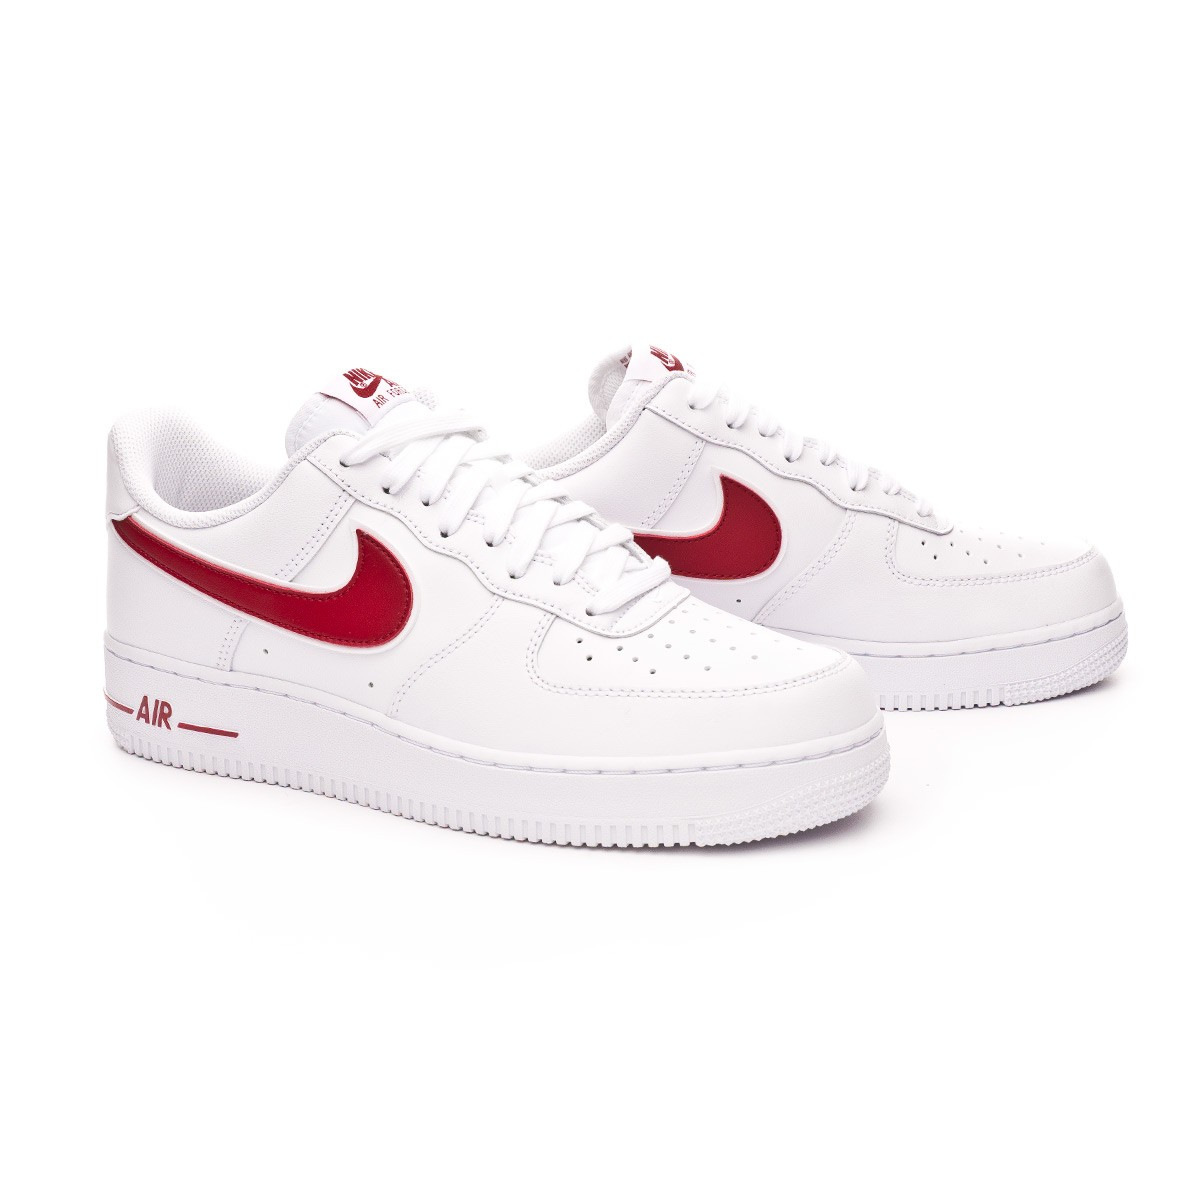 Nike Air Force 1 '07 3 2019 Trainers